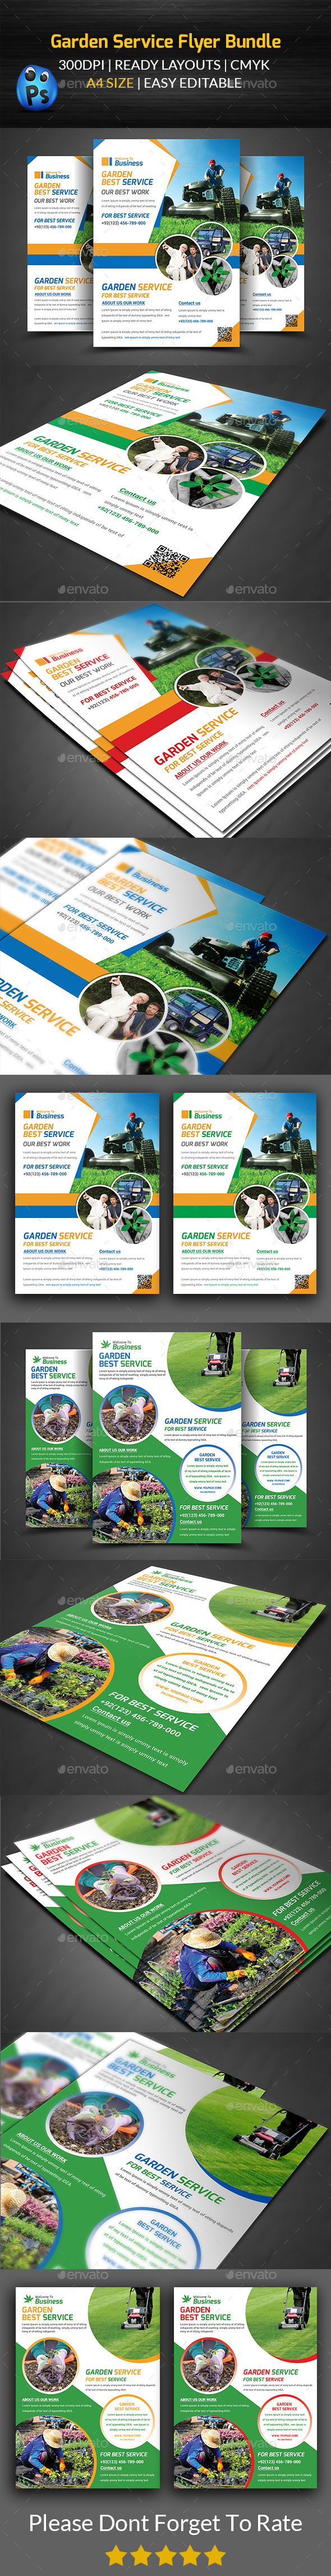 Garden Service Flyer Bundle - Corporate Flyers